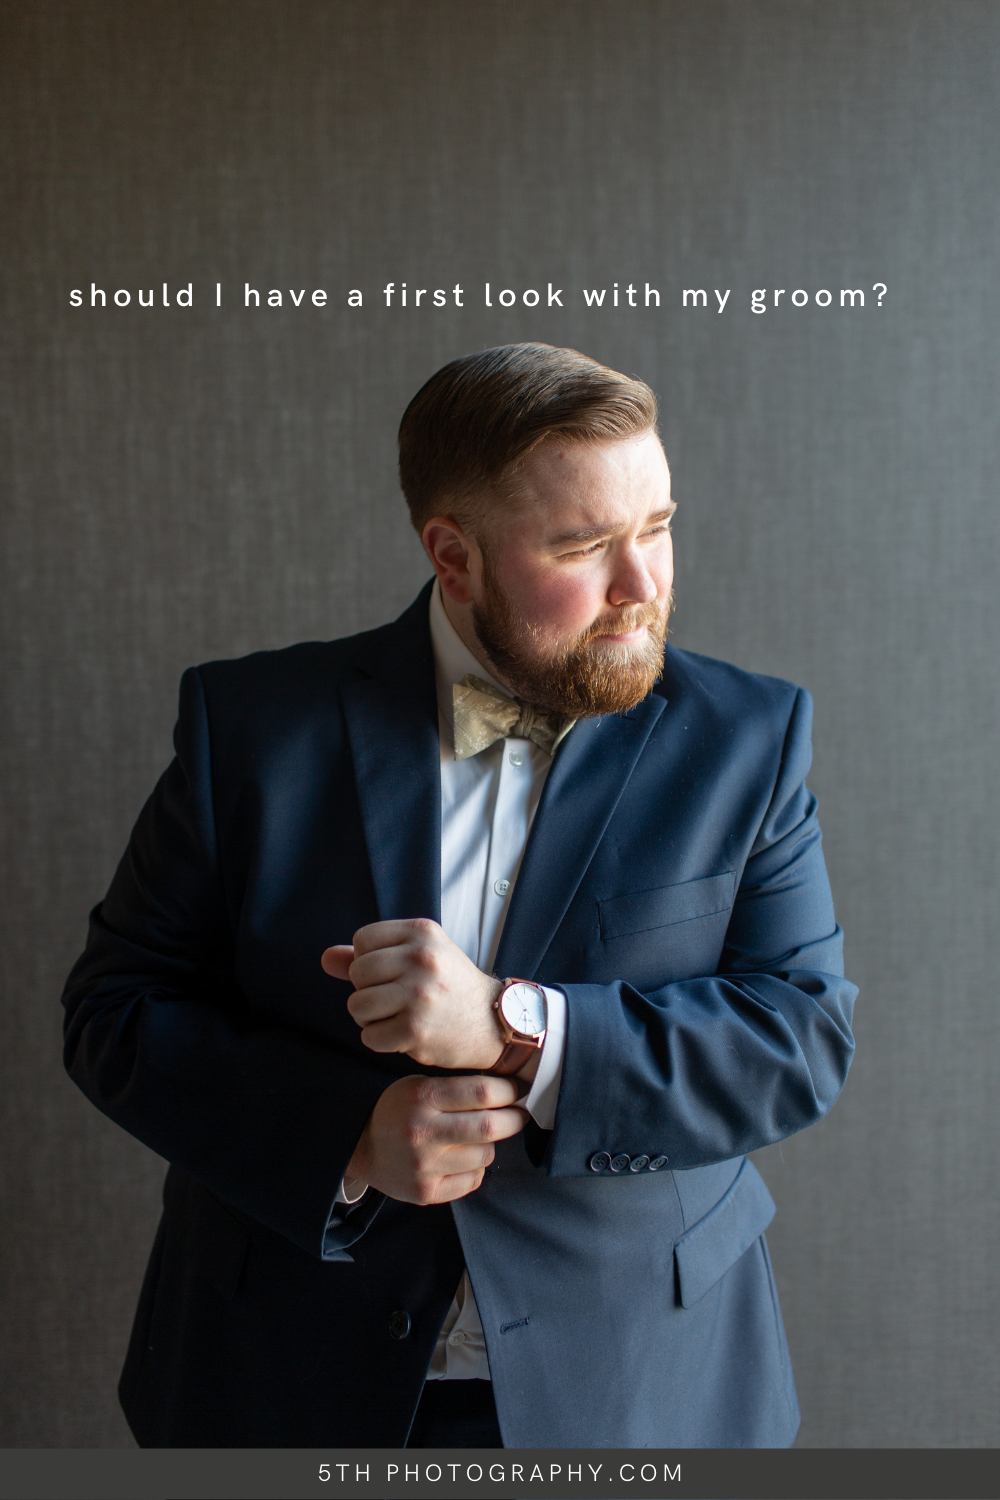 groom in getting ready room in stoic pose